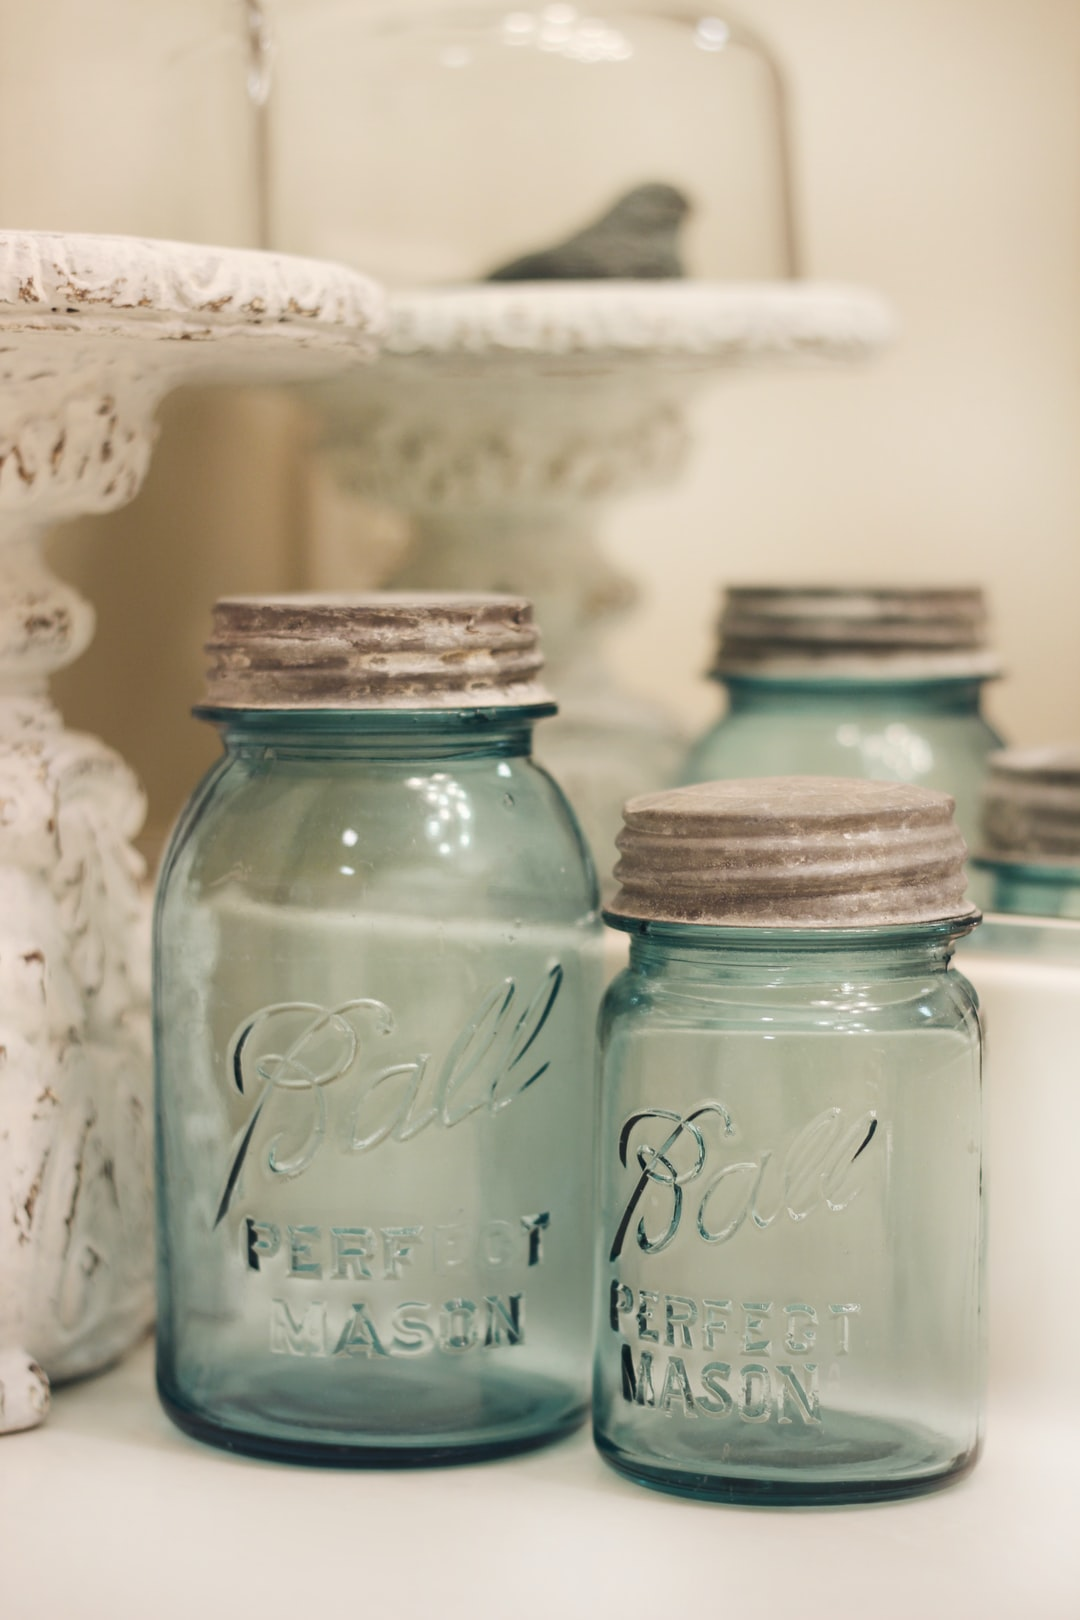 Vintage blue ball jars with zinc lids are displayed on a bathroom countertop as part of farmhouse style decor. Clean white bathroom with vintage objects for decor make this an appealing design choice.